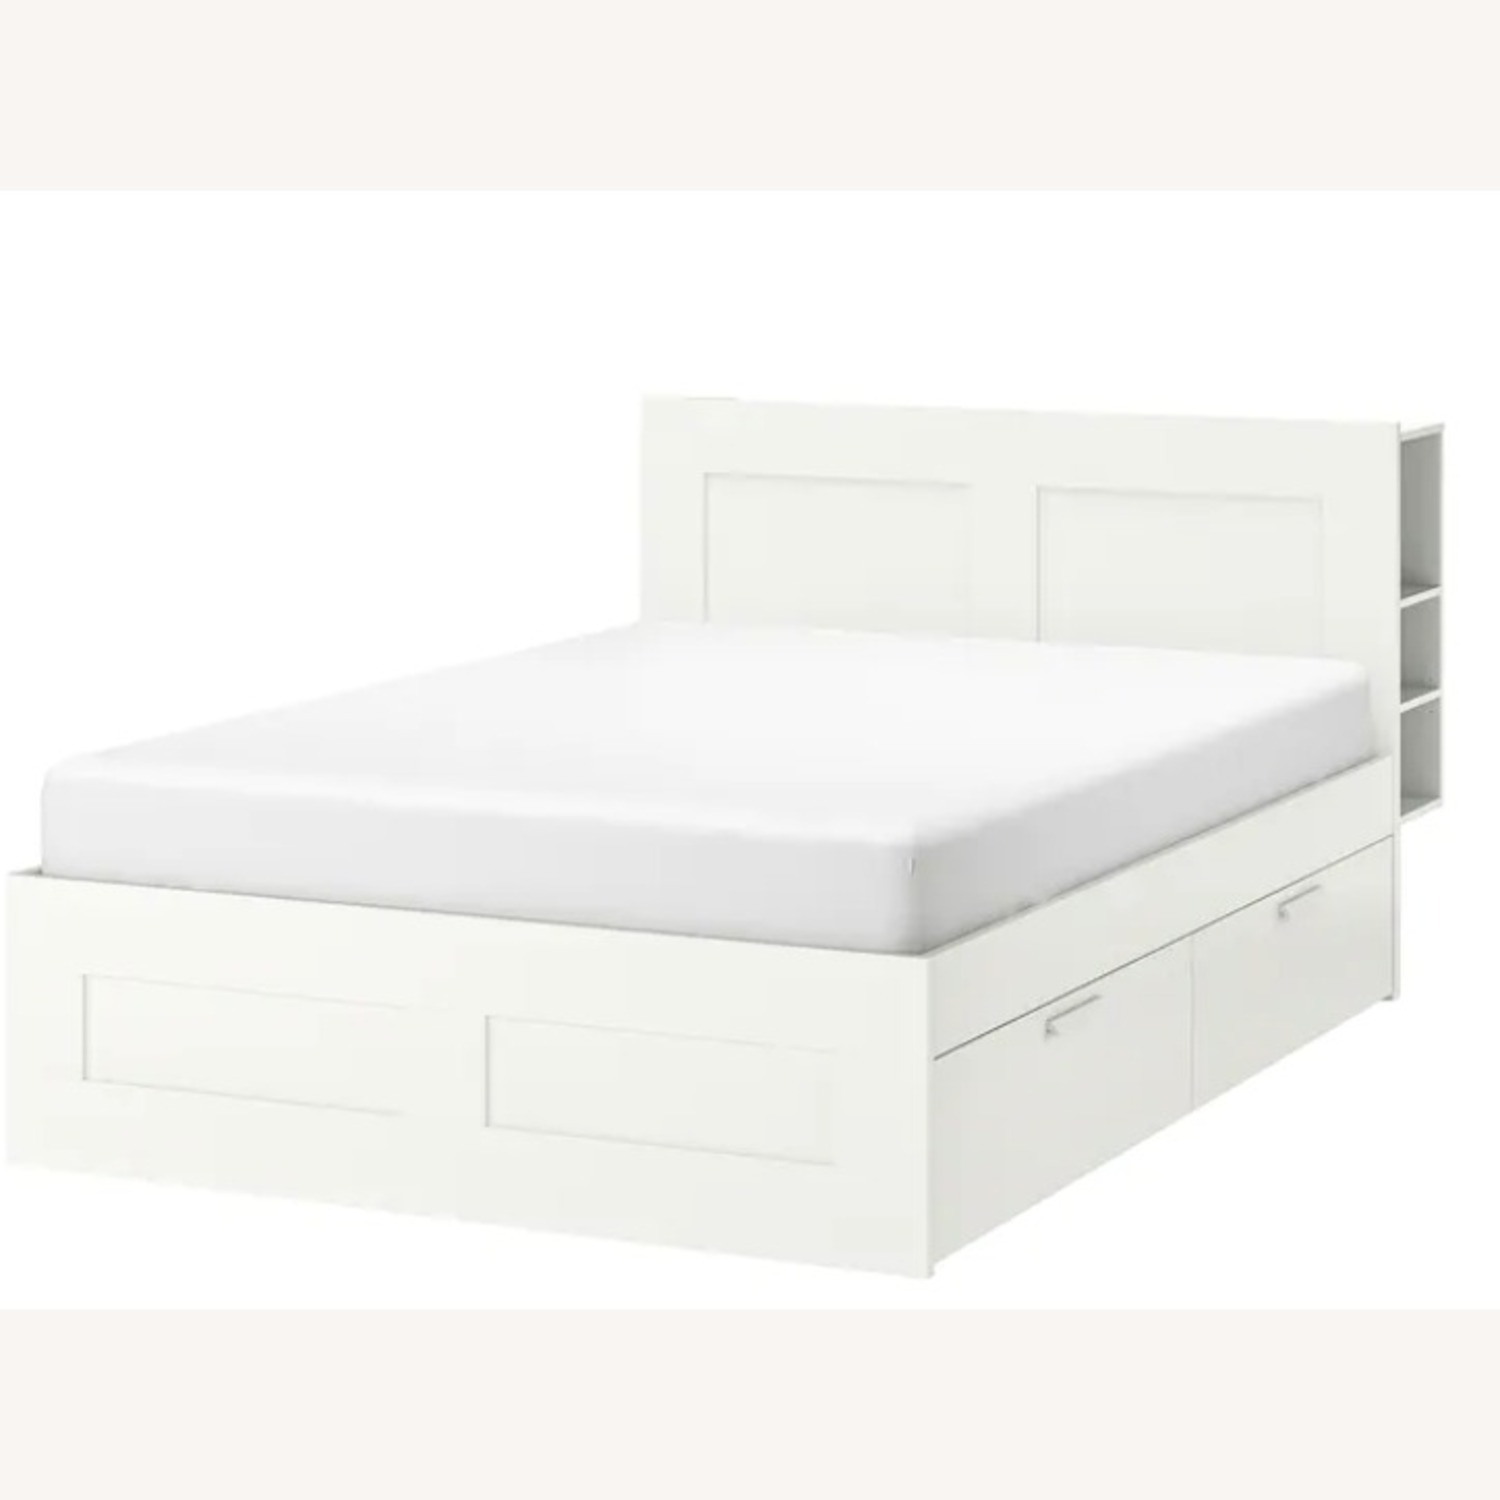 IKEA Bed Frame with Storage - image-1